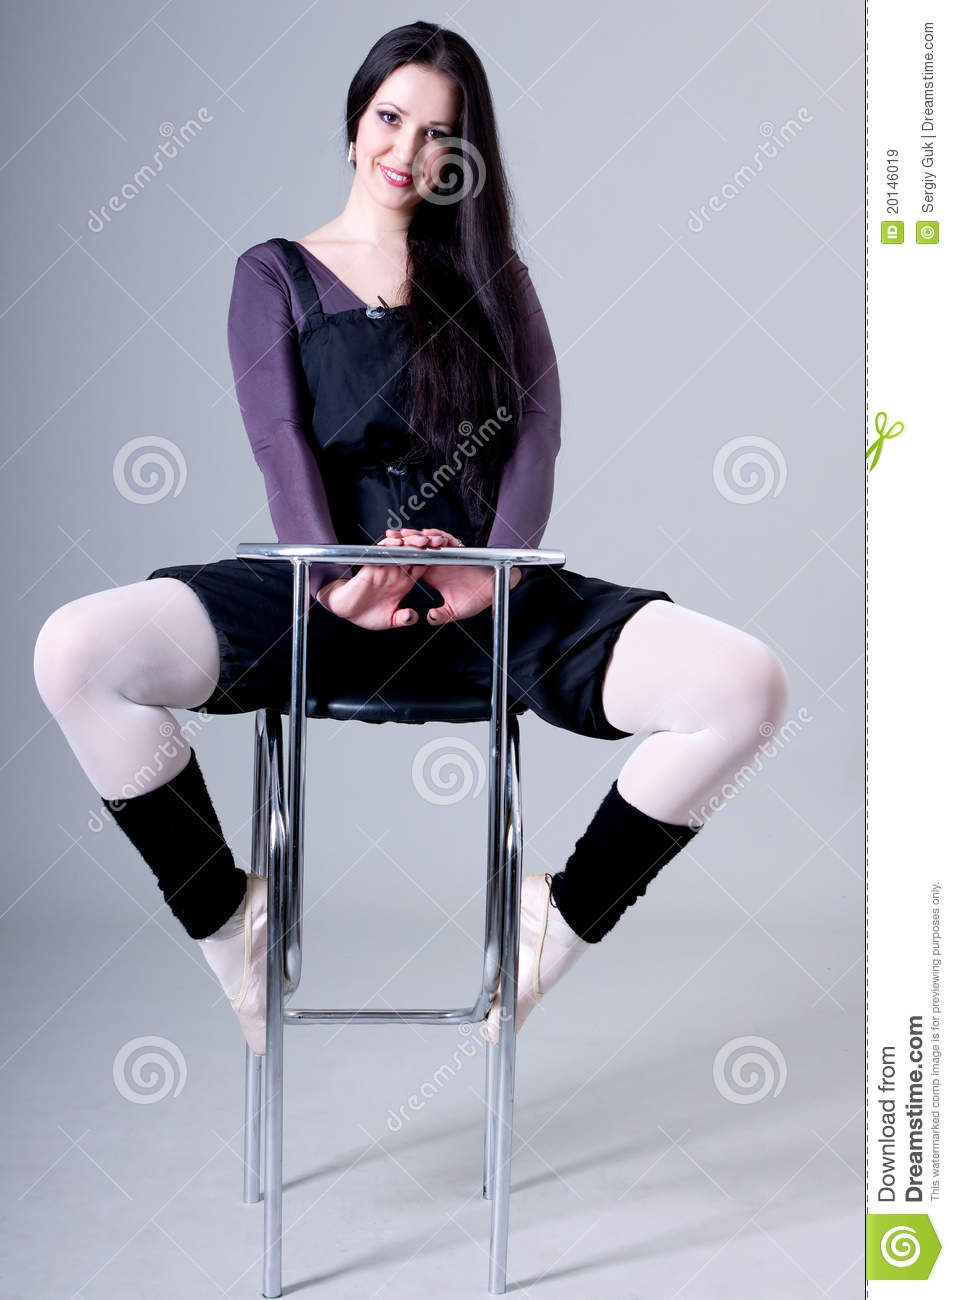 Woman Sitting On Bar Stools Royalty Free Stock Images  : woman sitting bar stools 20146019 from dreamstime.com size 955 x 1300 jpeg 96kB